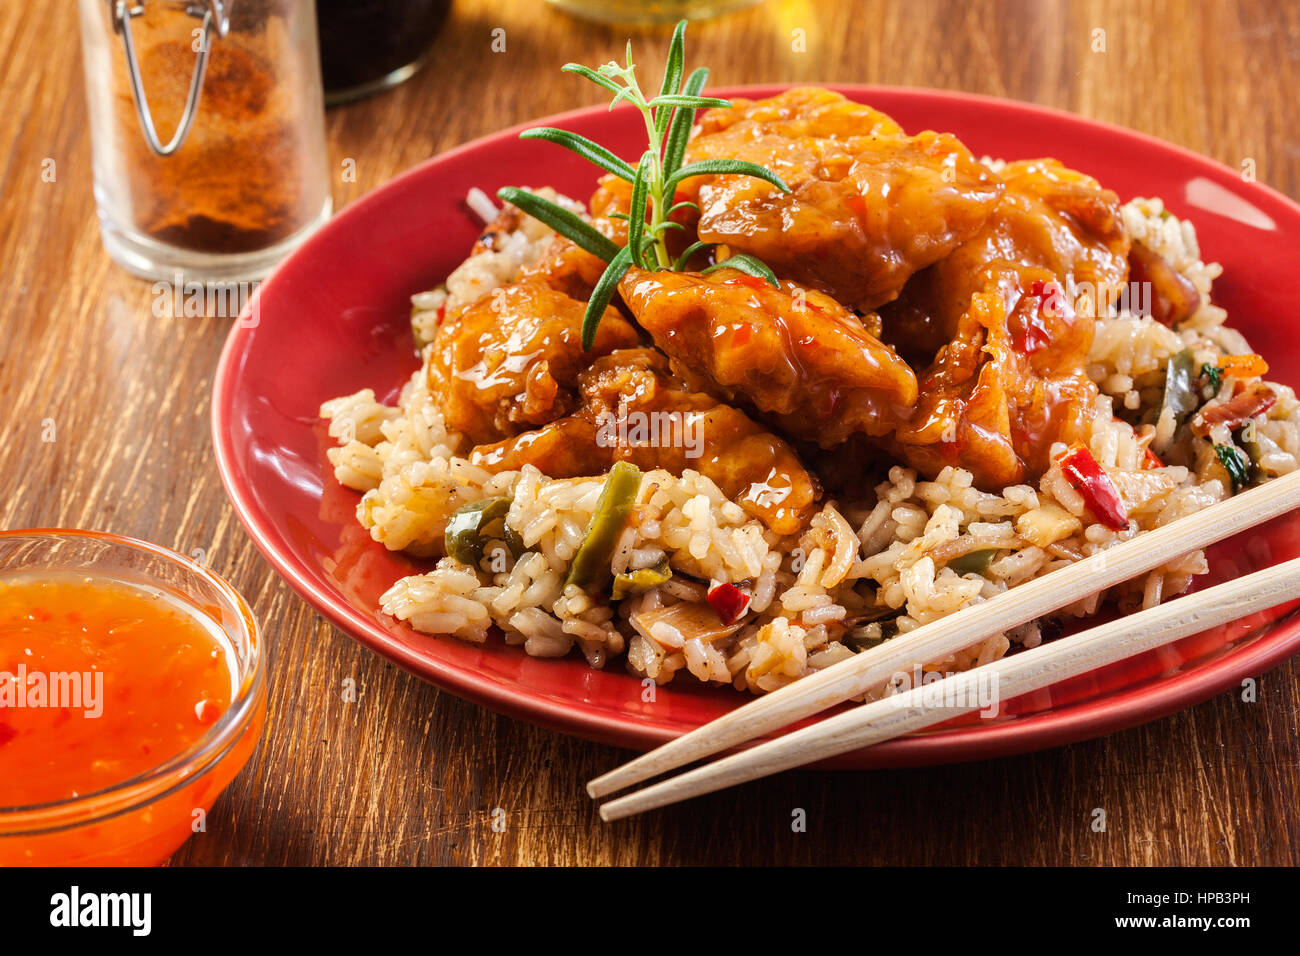 Fried chicken pieces with rice and sweet and sour sauce - Stock Image